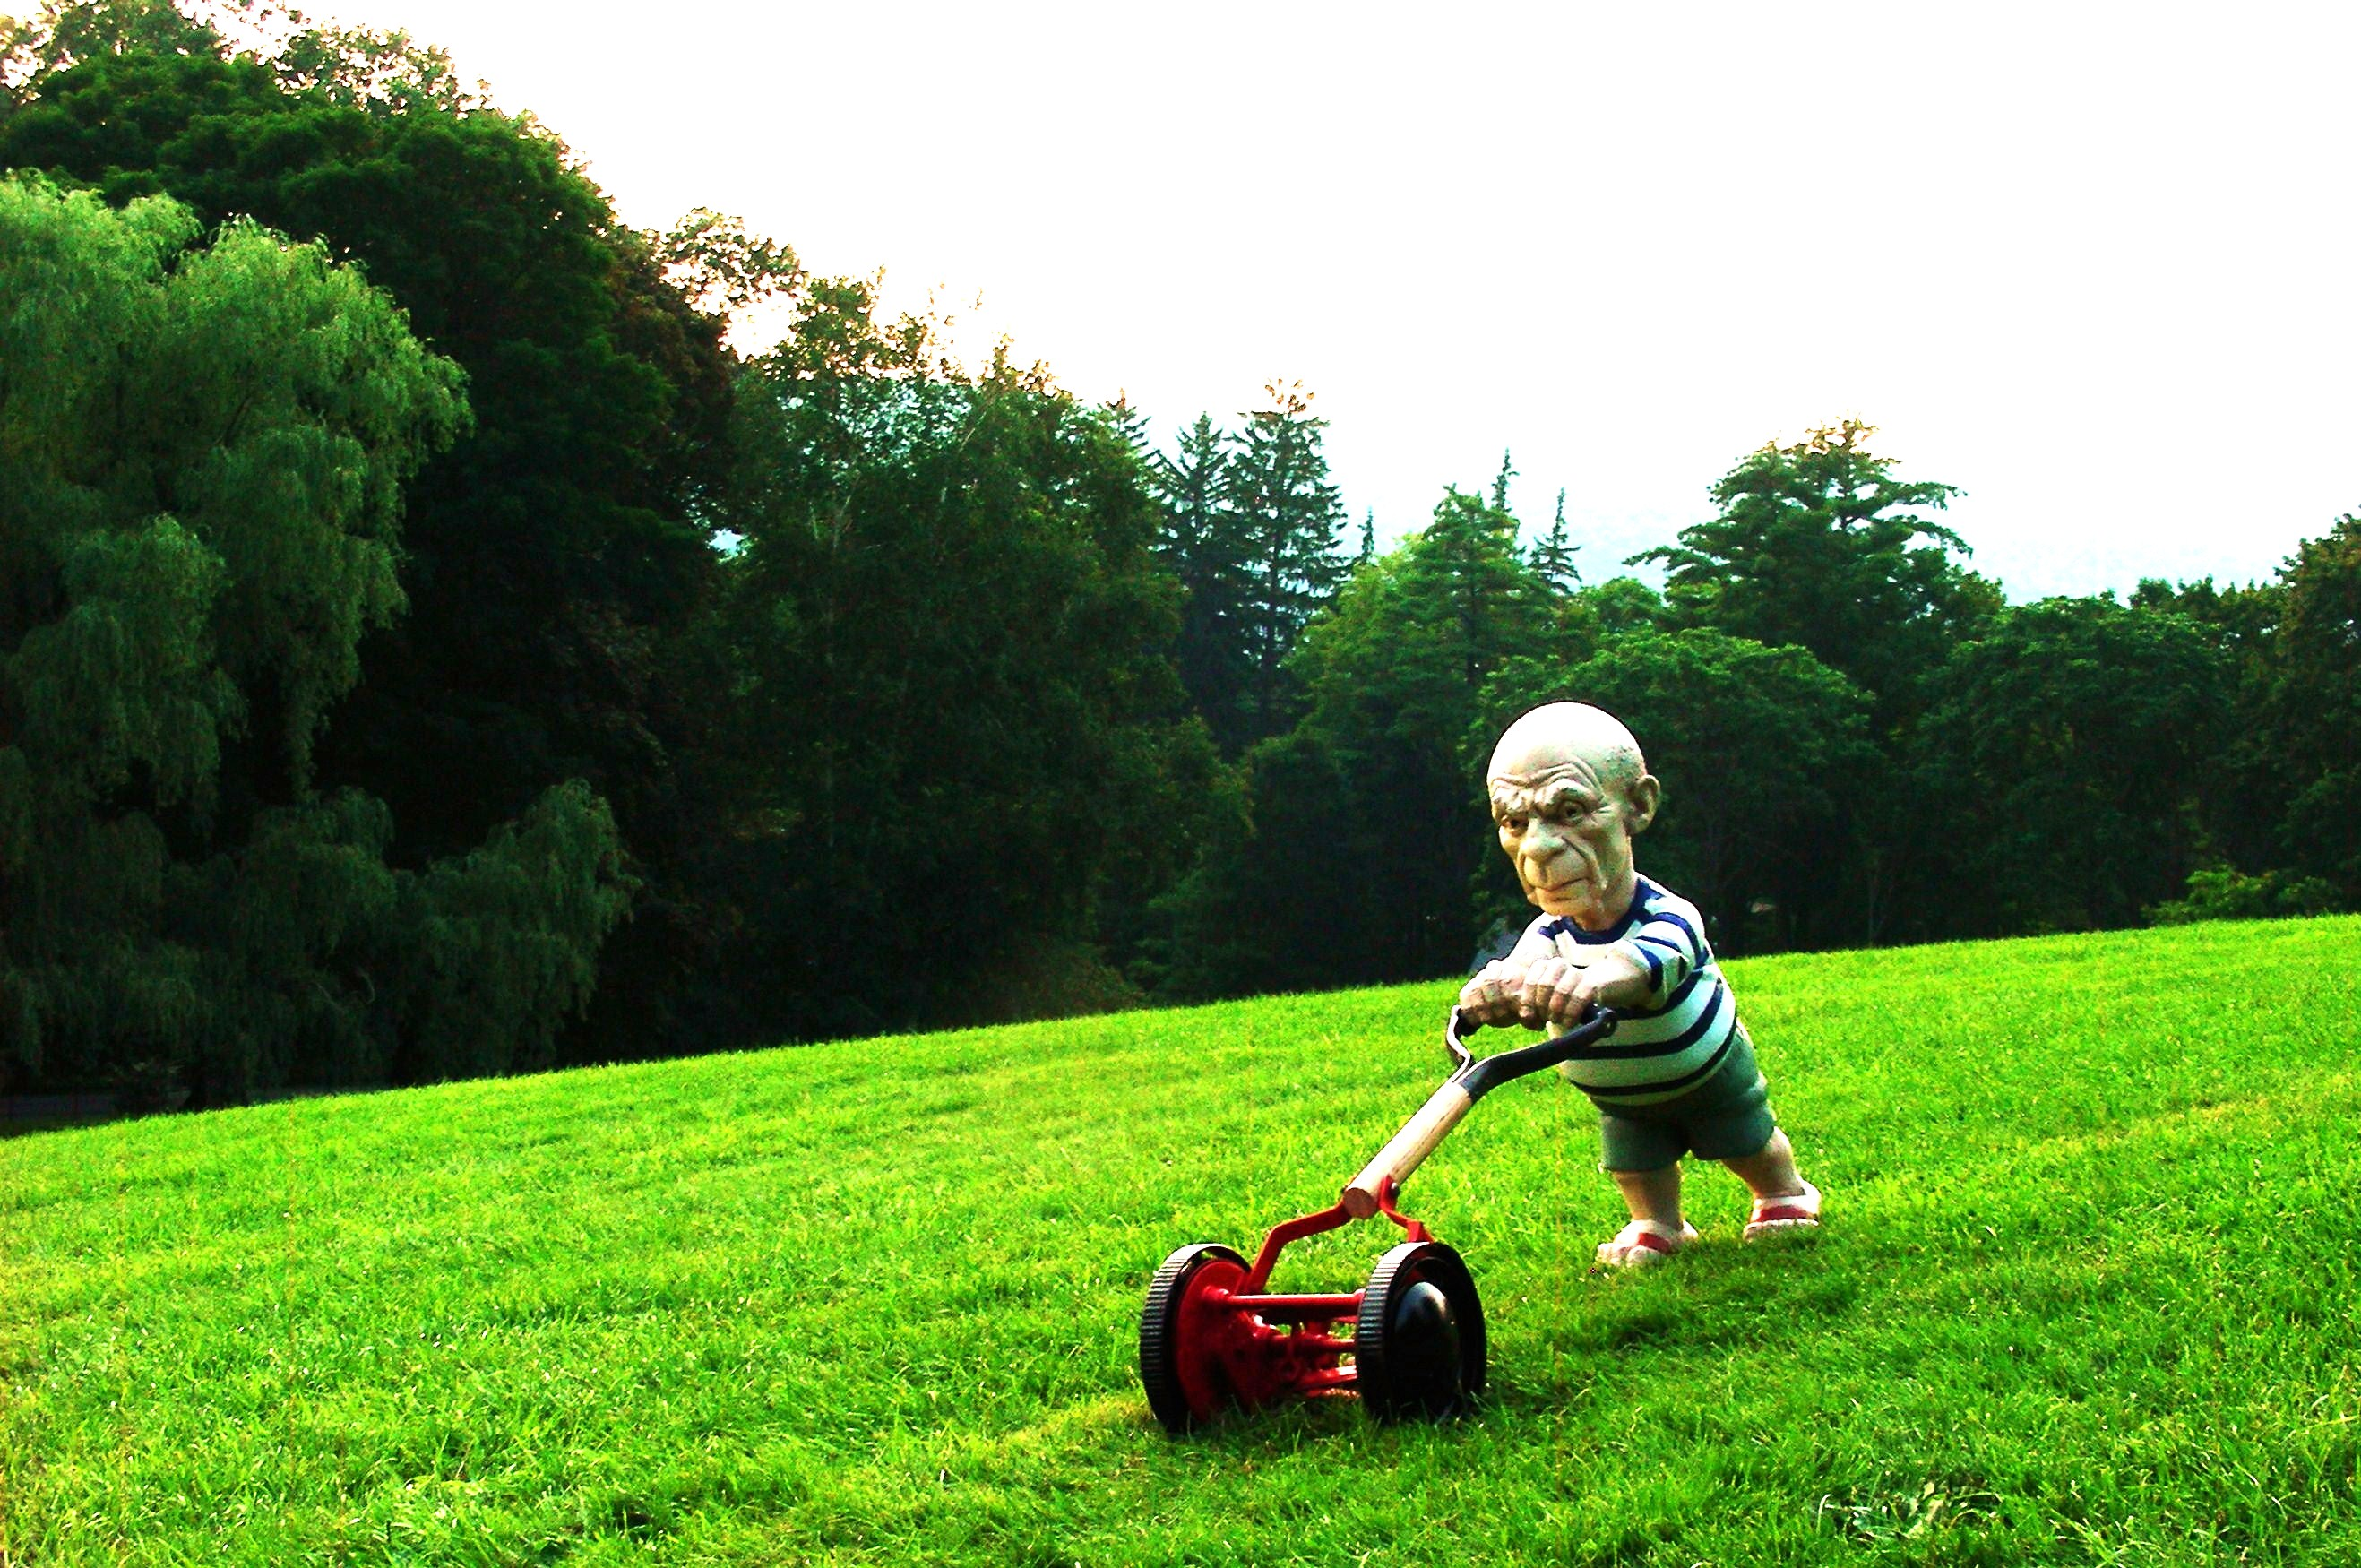 Sculpture By Elliott Arkin: Seedbed [Picasso Mowing The Lawn] (2009)